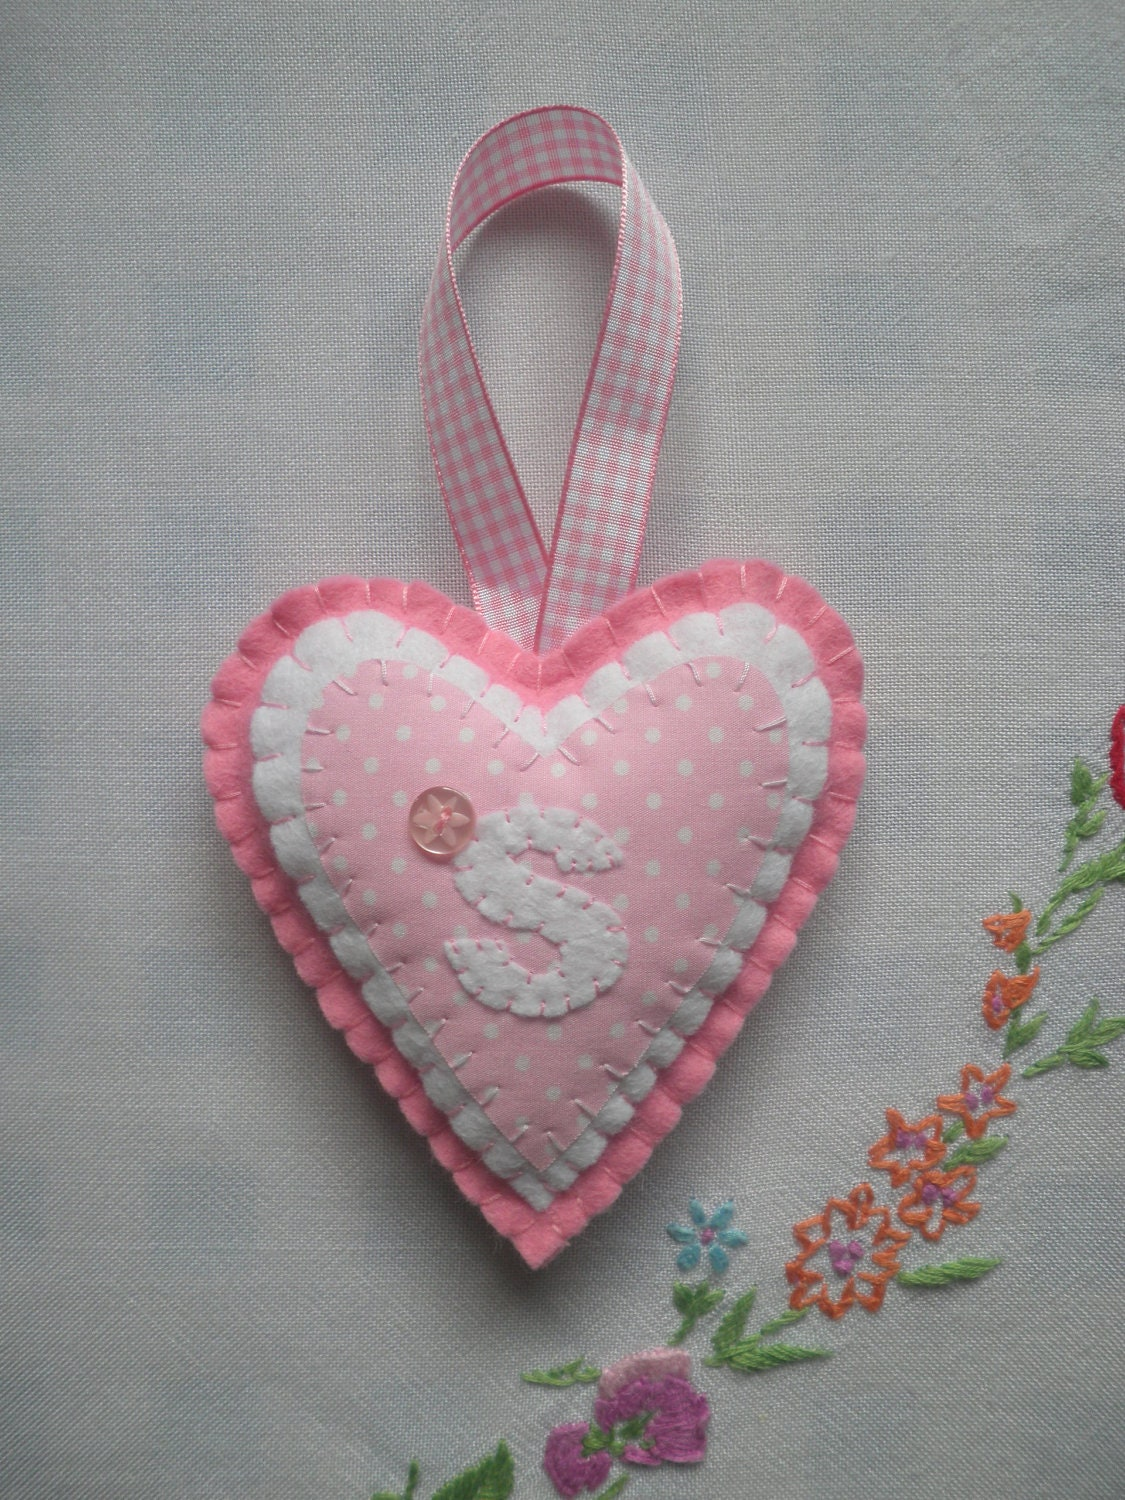 Personalised Gift - Handmade Pink Felt Heart with Initial